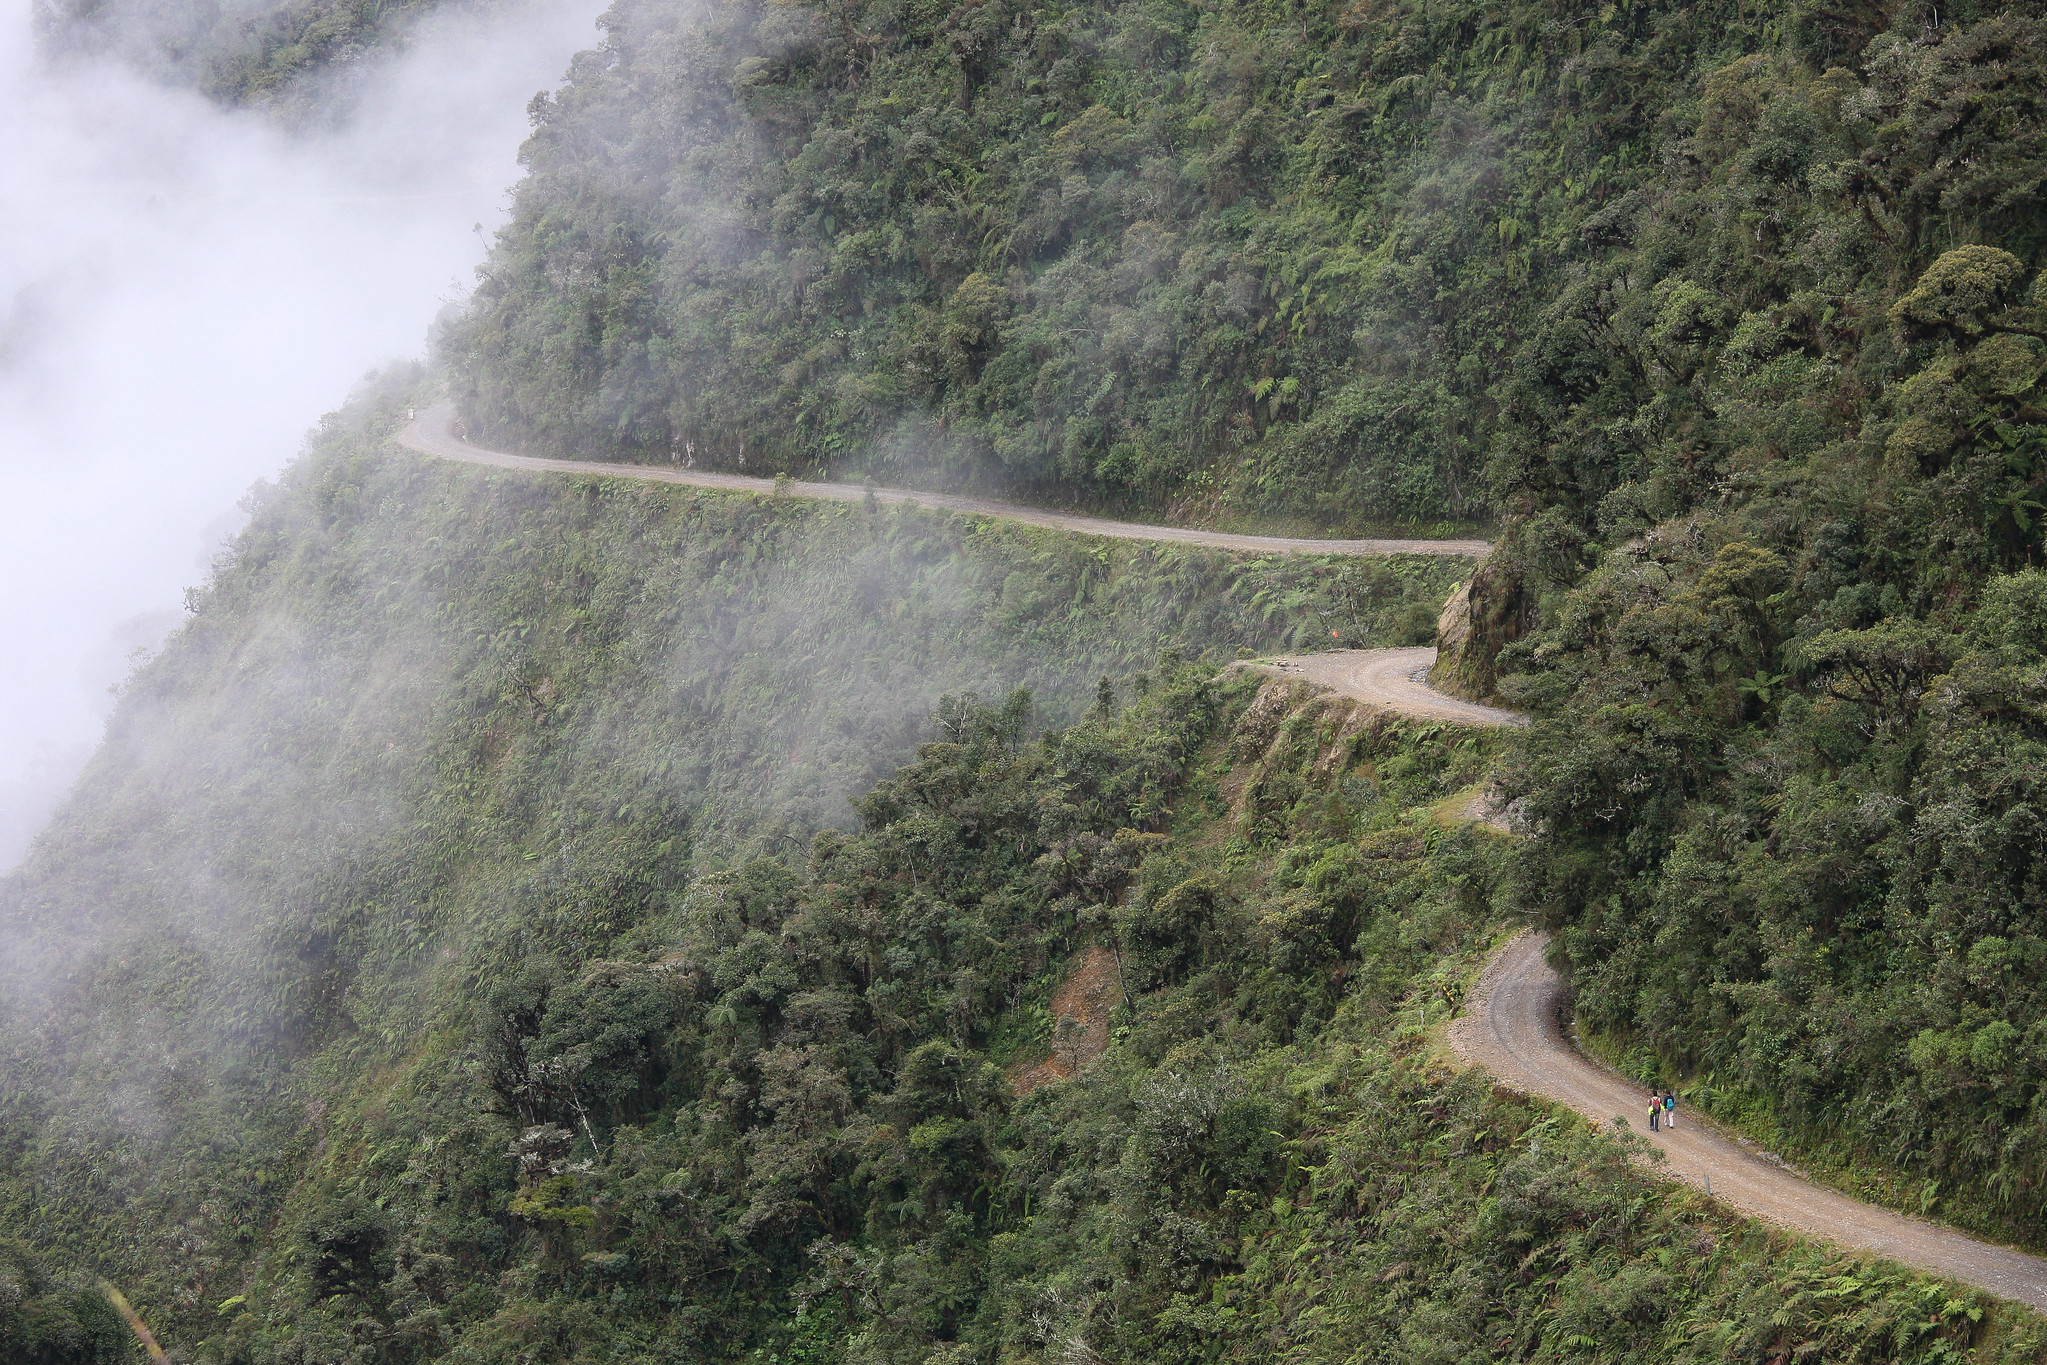 Walking / Biking the world's most dangerous road in Bolivia